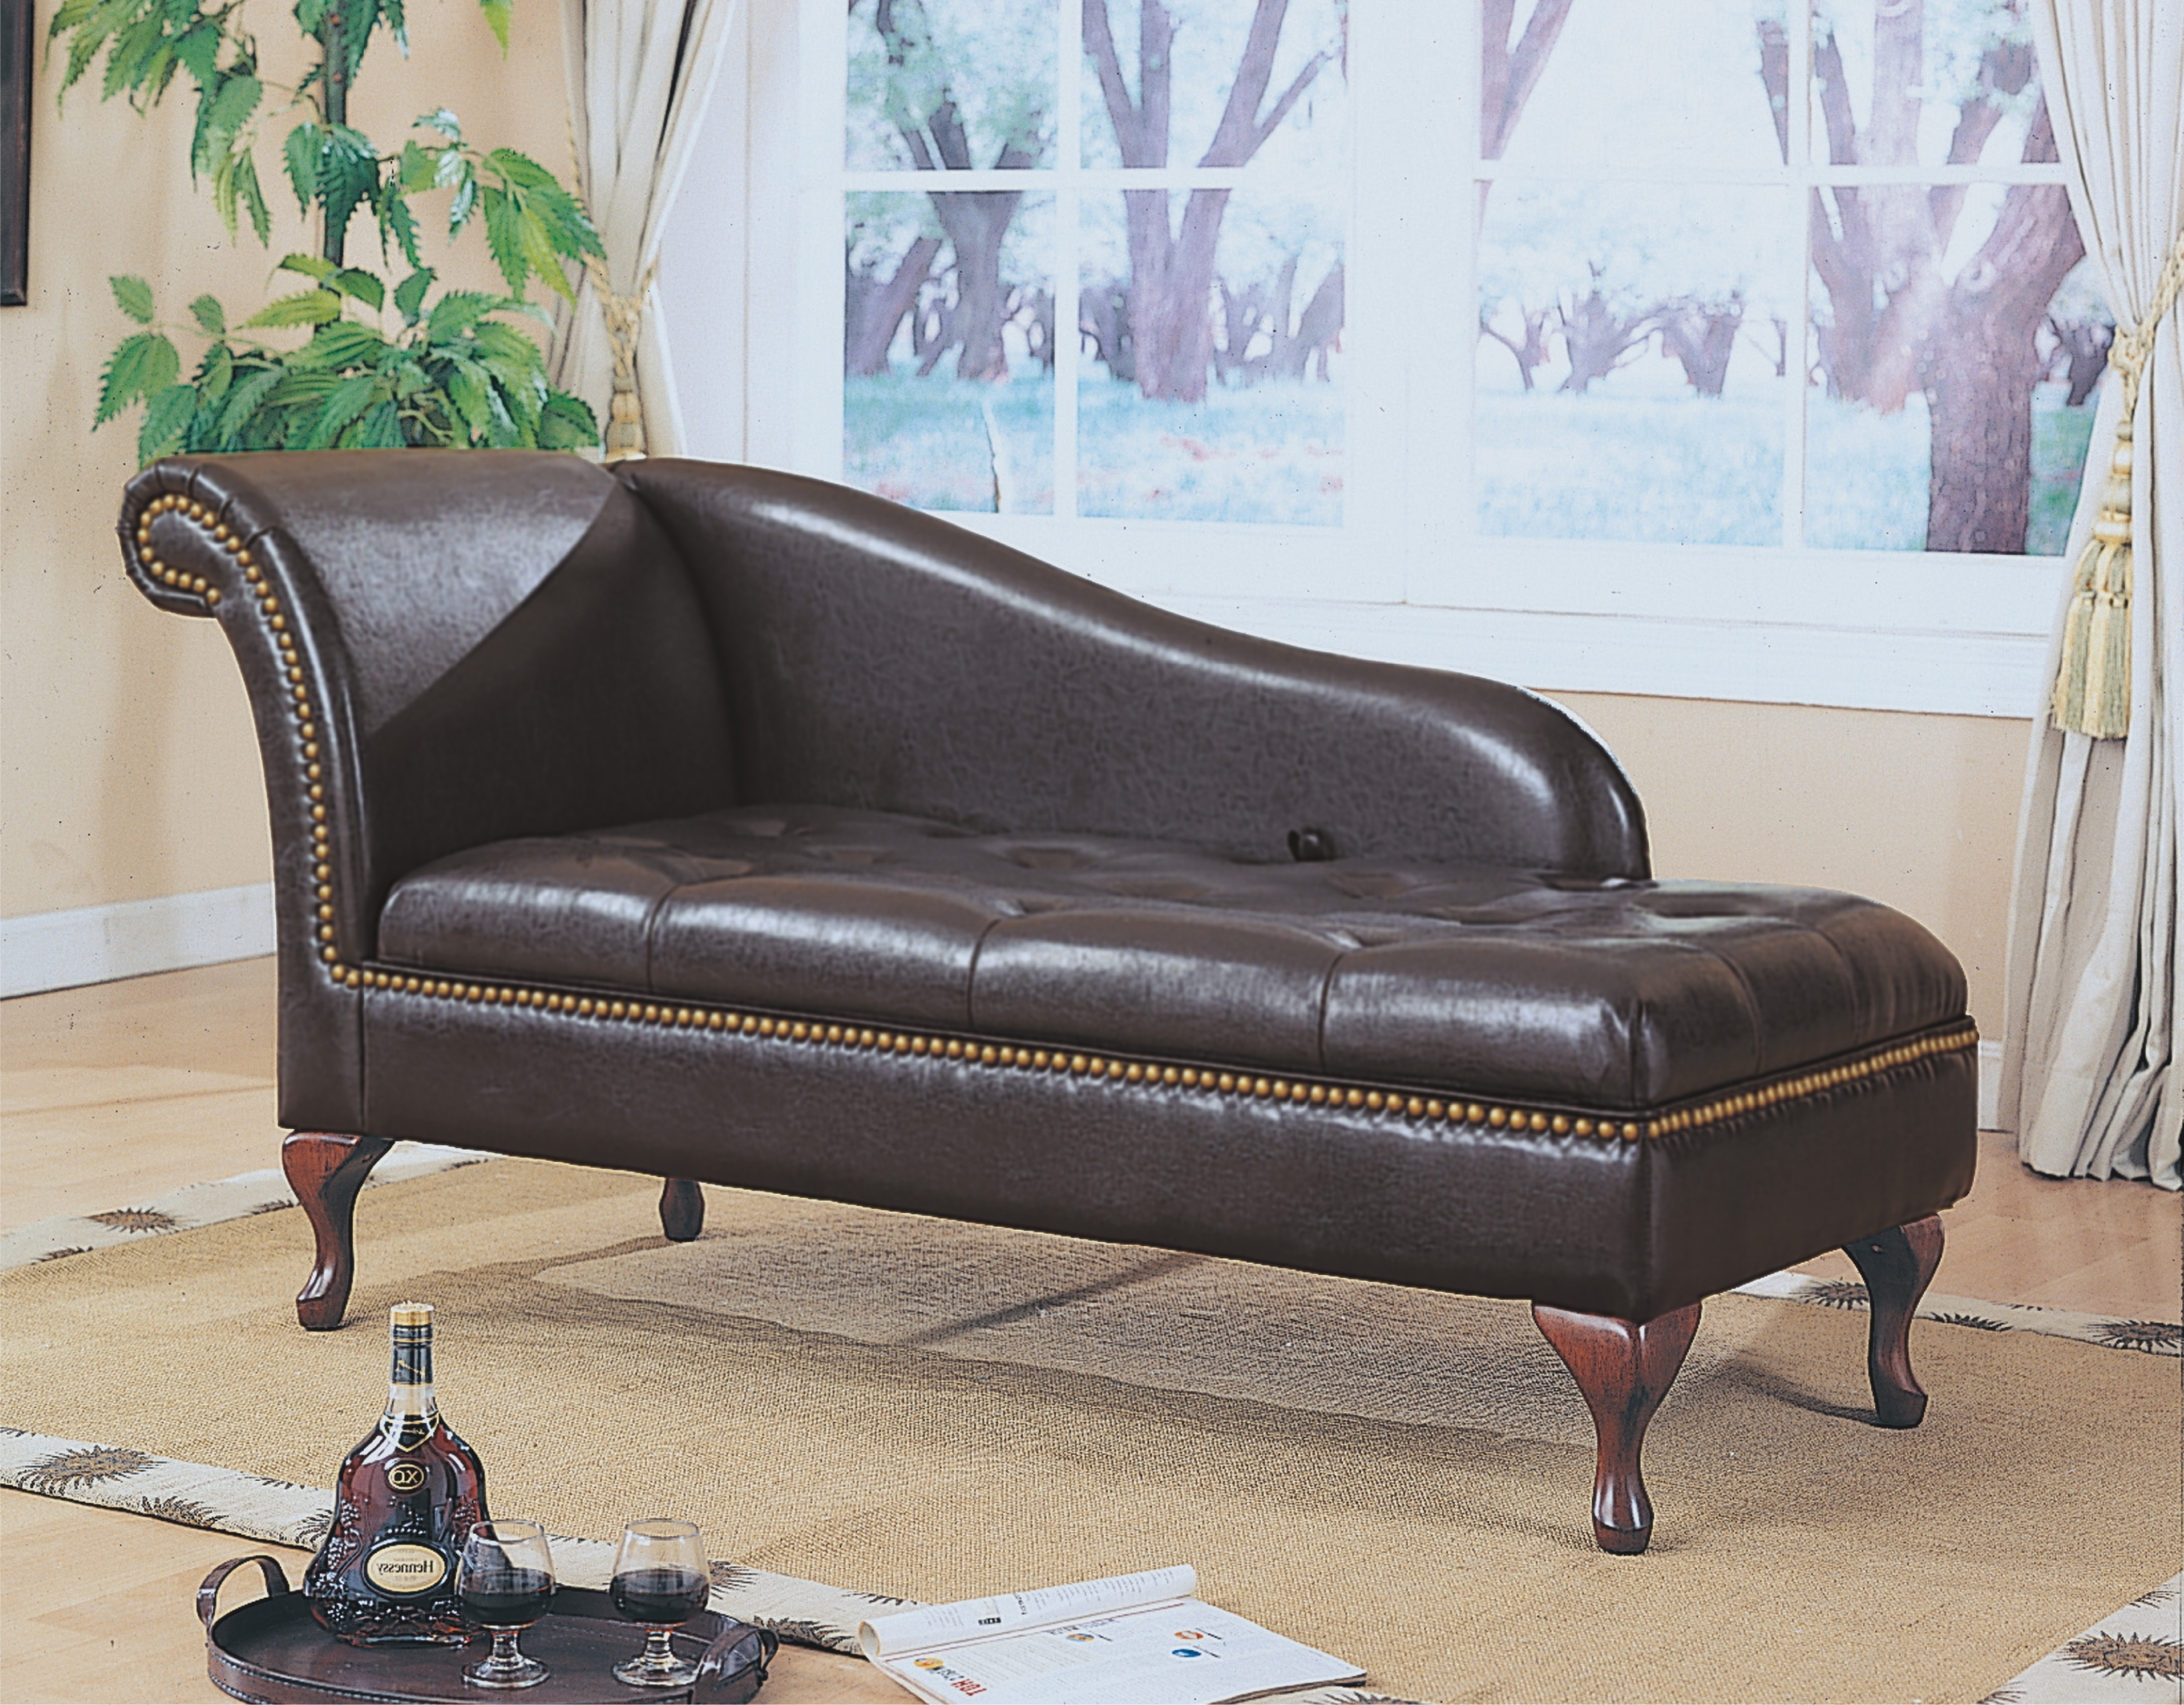 Leather Lounge Sofas Within Recent Chaise Lounge Sofa Leather Theamphletts Com Regarding Decorations (View 16 of 20)